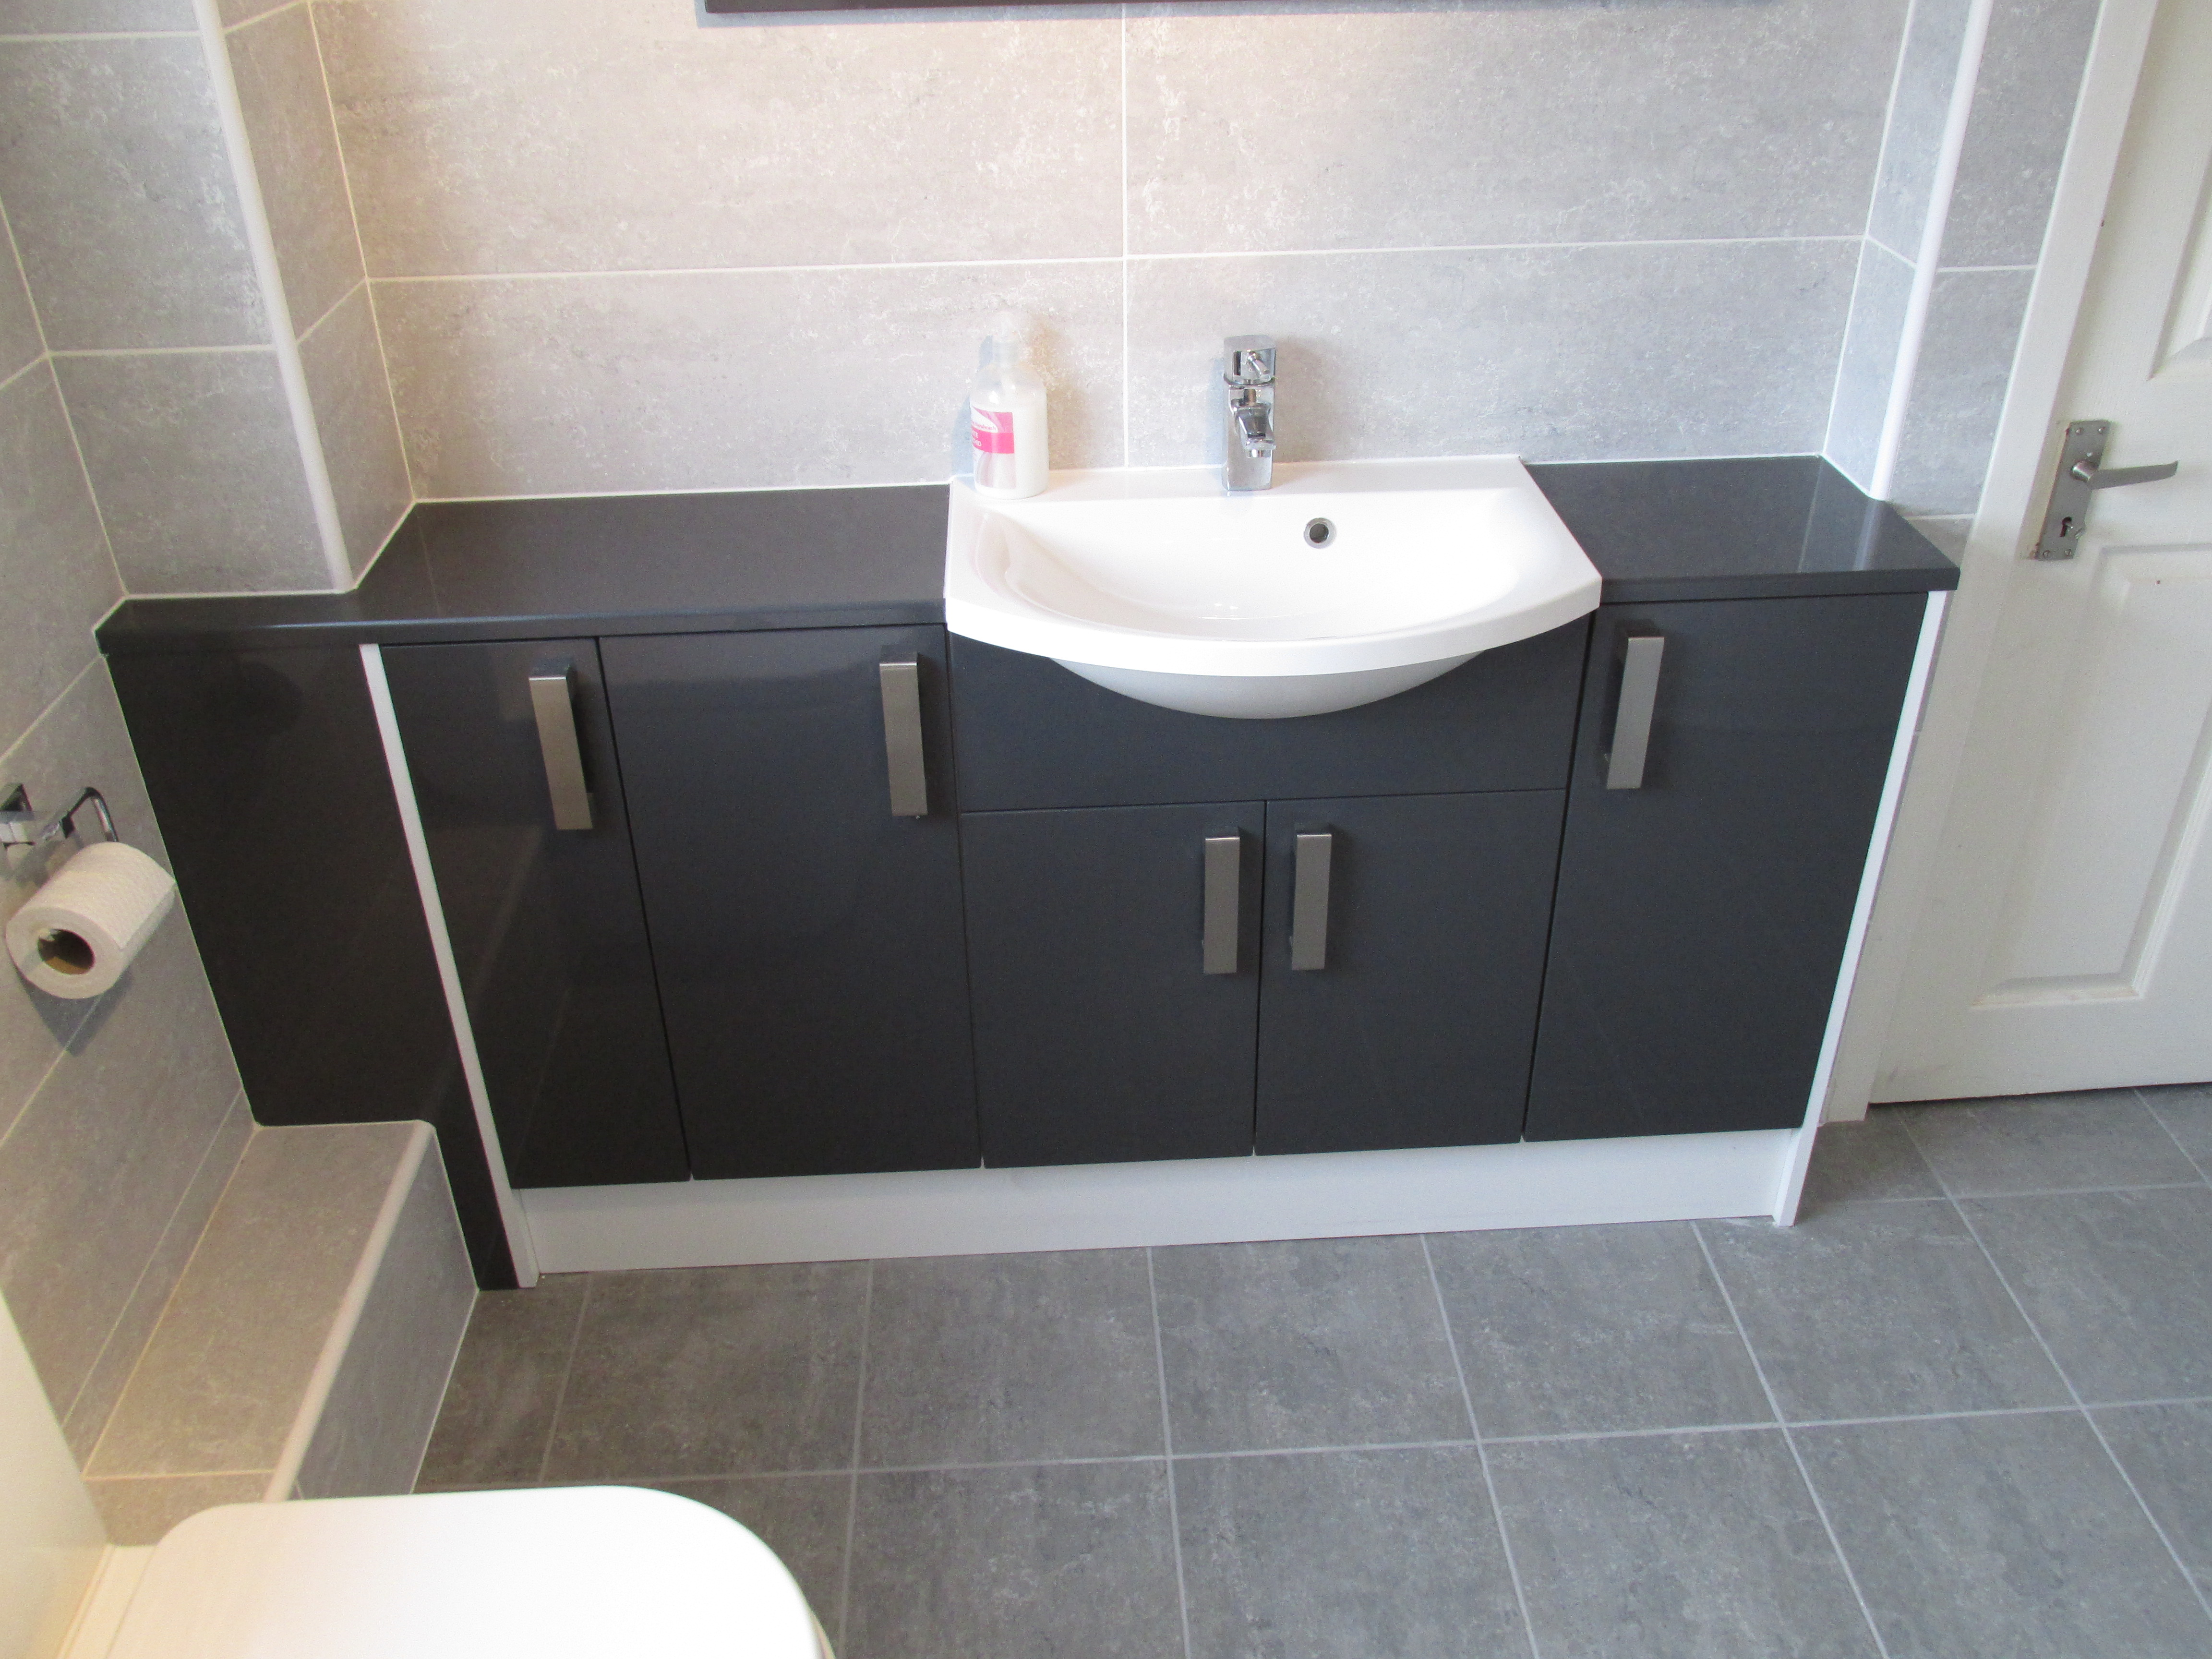 A Popular Choice For Our Customers Looking For Additional Storage In Their  Bathroom Is The Calypso Fitted Furniture. We Can Tailor The Combination Of  Units ...